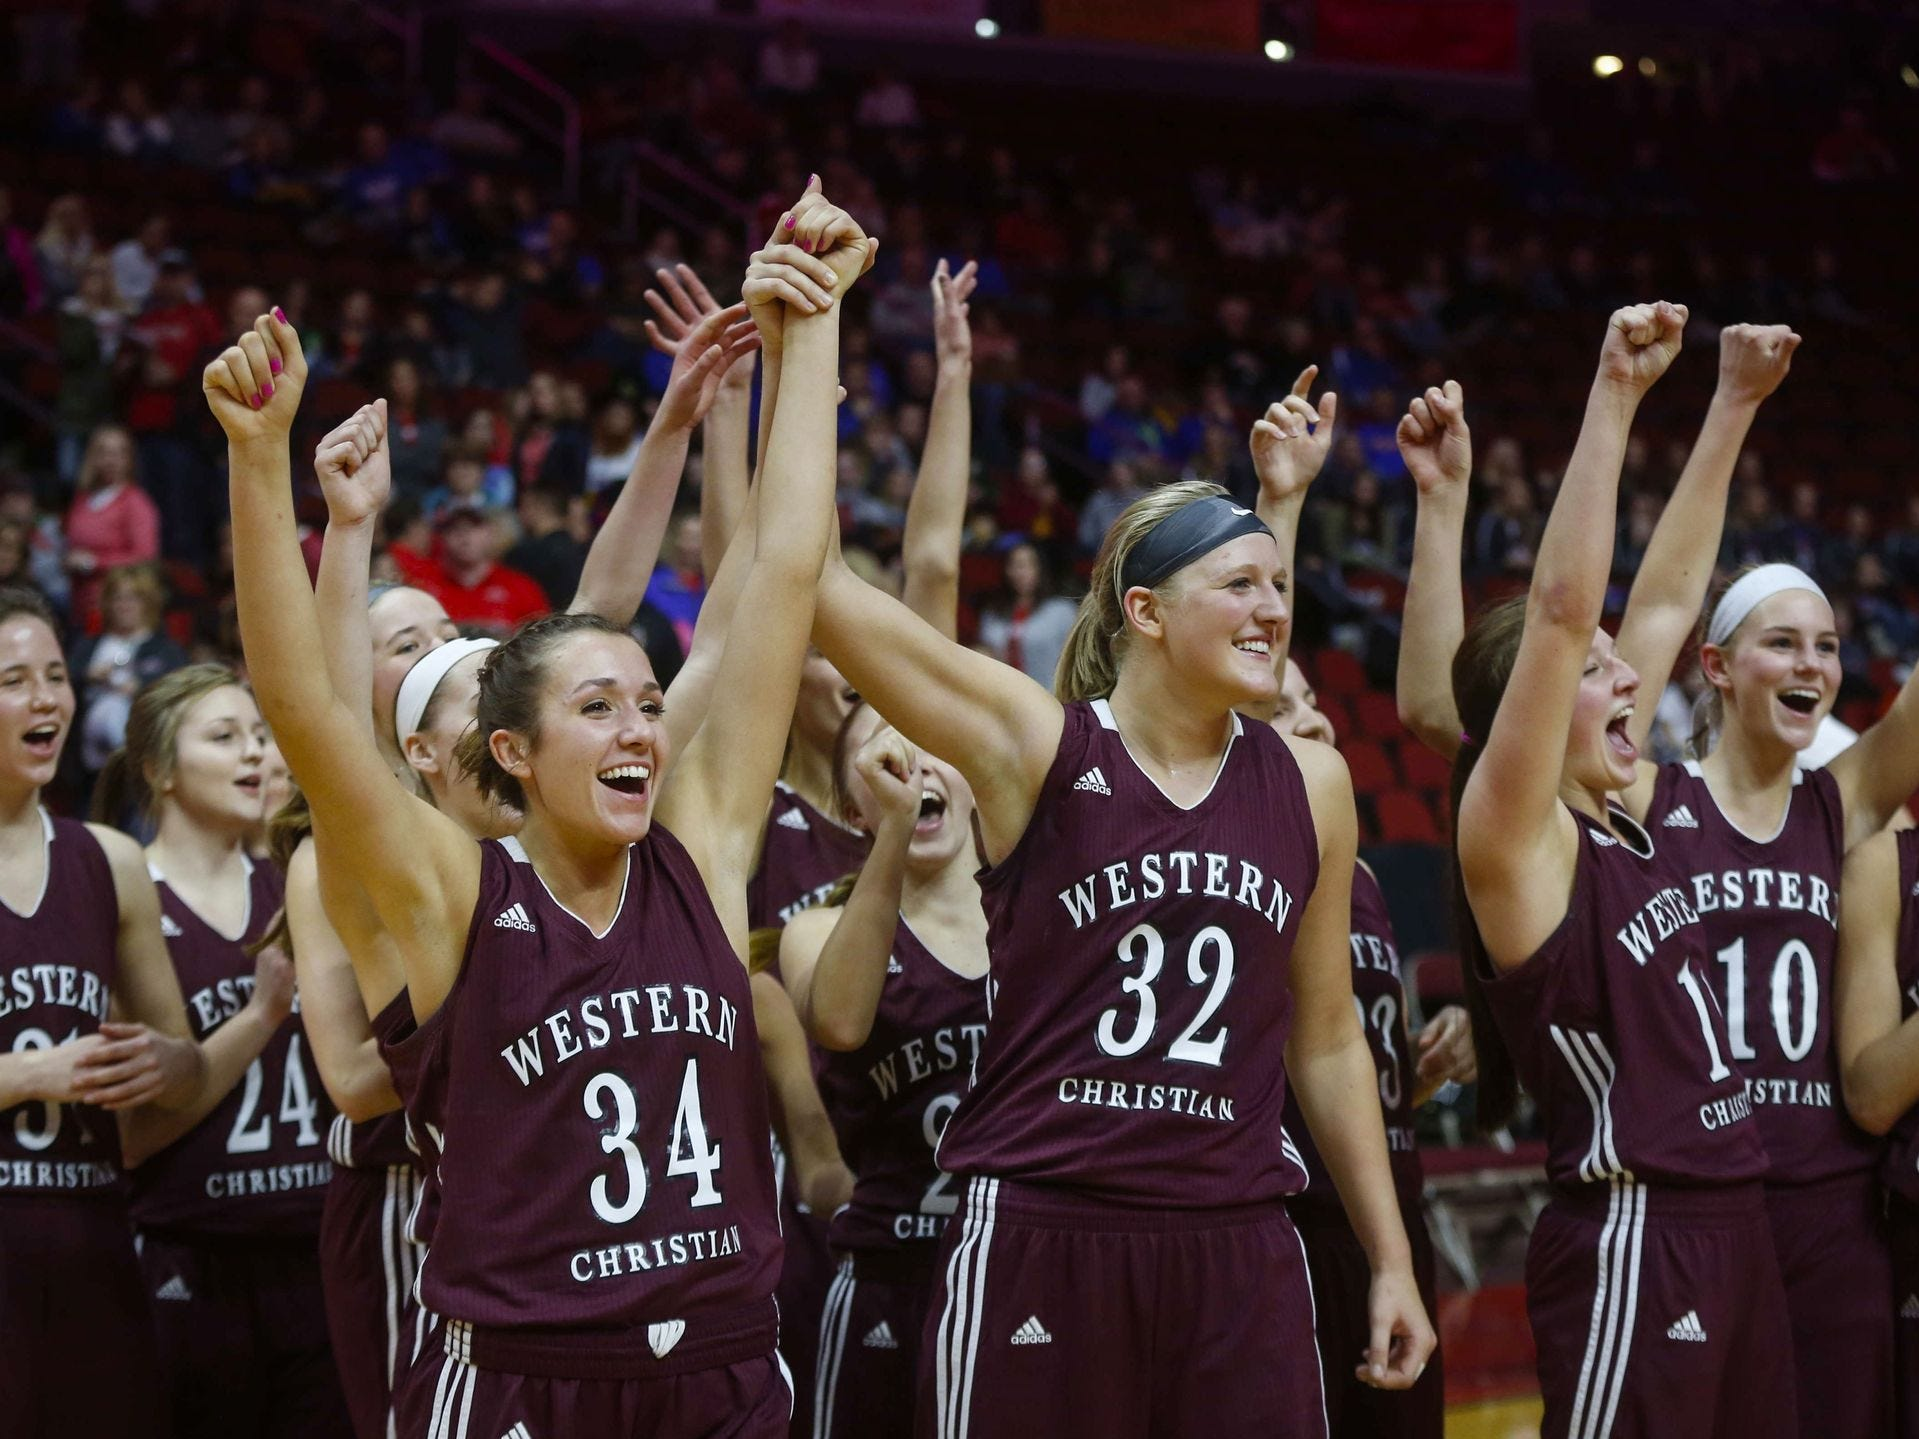 Members of the Western Christian girls basketball team celebrate after beating Regina during the Iowa high school girls state basketball tournament March 2, 2017, at Wells Fargo Arena in Des Moines. Bryon Houlgrave/Register file photo